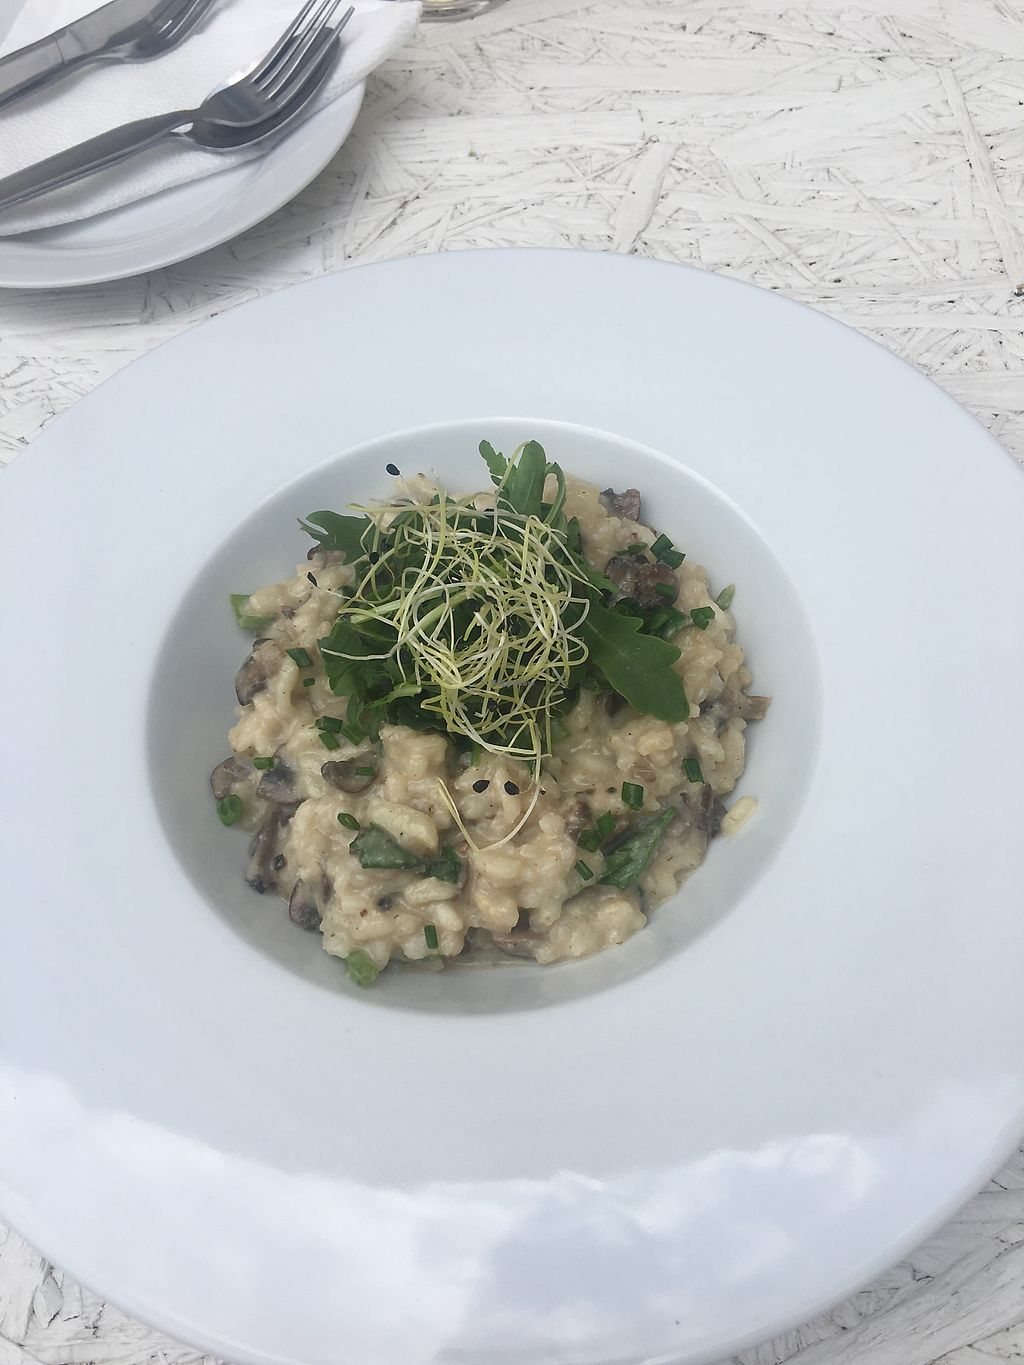 """Photo of Incruenti  by <a href=""""/members/profile/AndreaHafsi"""">AndreaHafsi</a> <br/>Mushrooms risotto  <br/> July 15, 2017  - <a href='/contact/abuse/image/78551/280743'>Report</a>"""